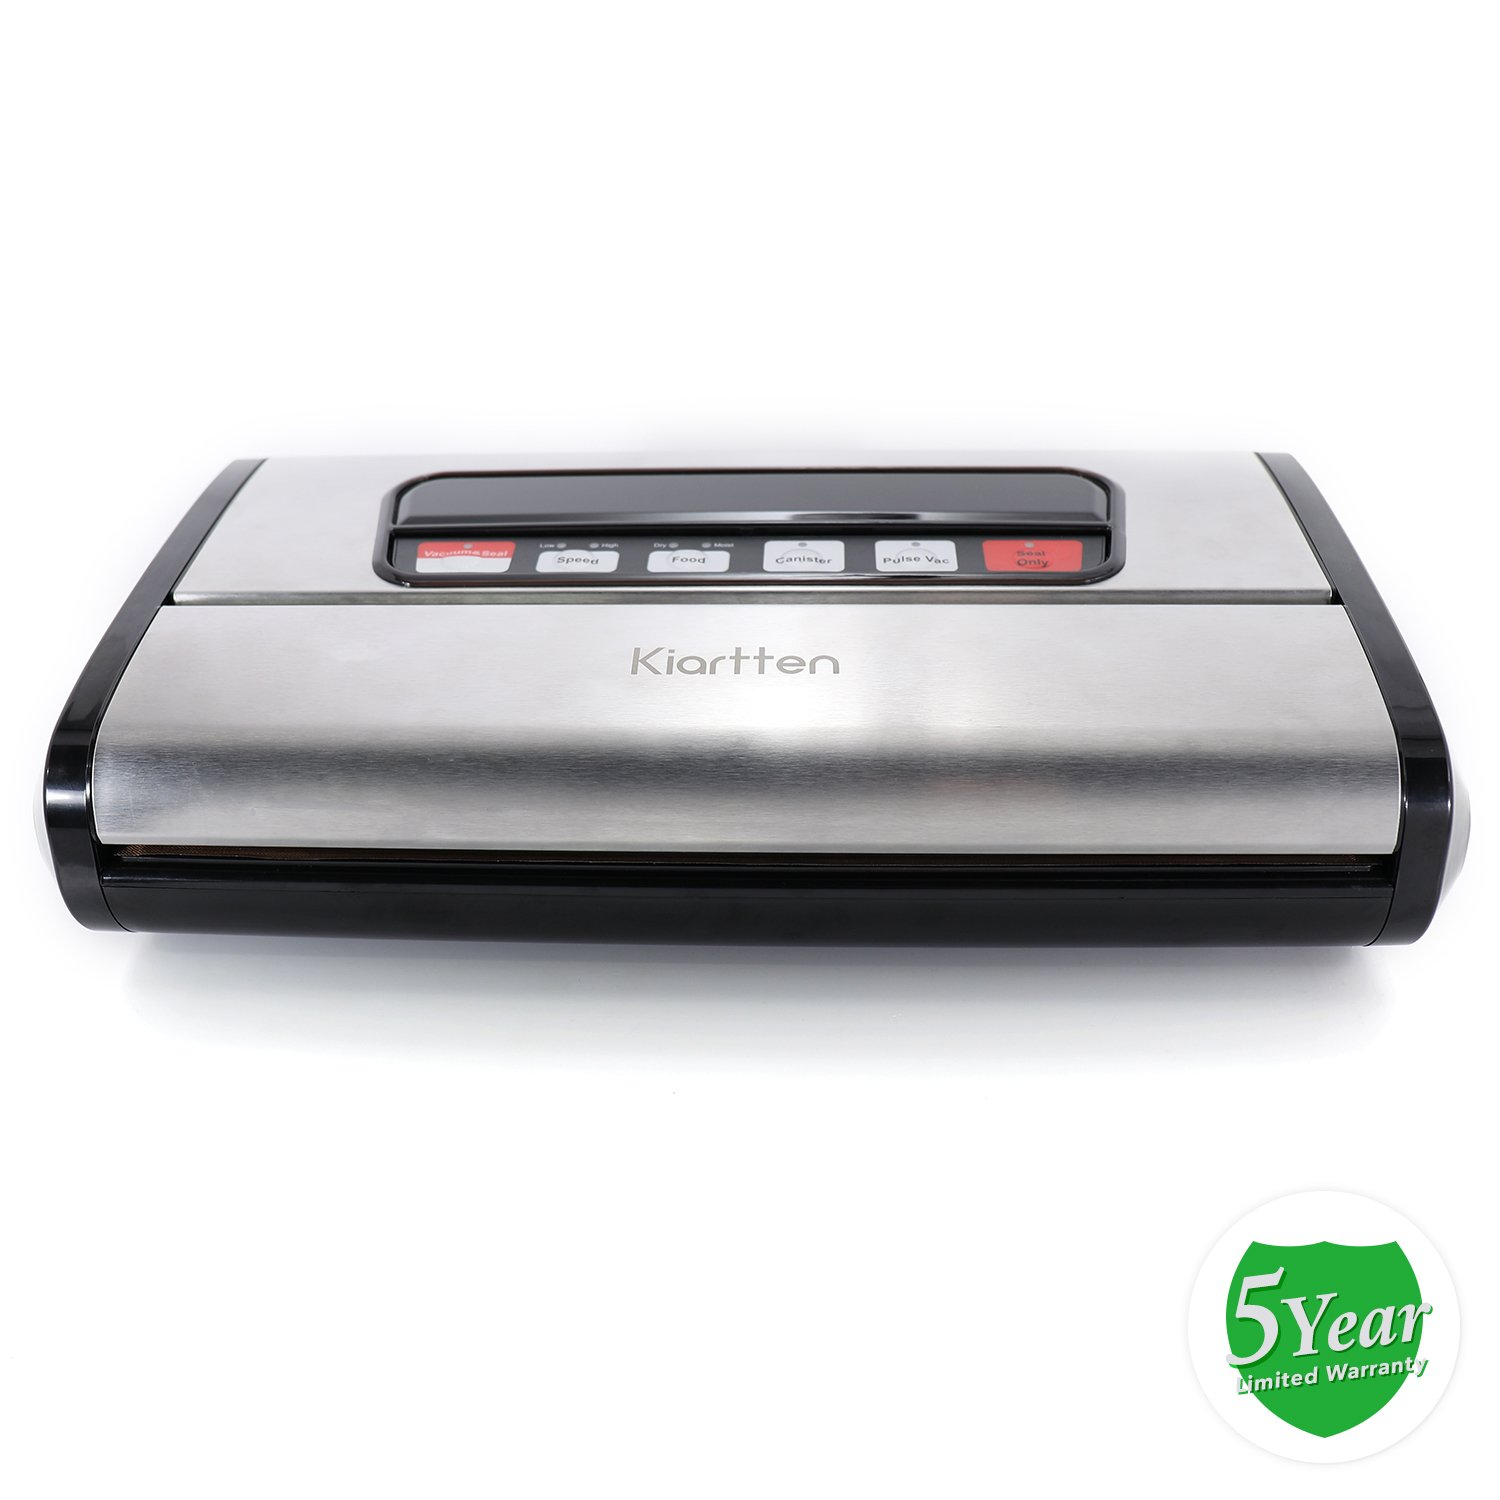 Kiartten Vacuum Sealer, A Fresh Food Locker for Your Kitchen. Keeps Food Fresh Up To 5X Longer. (Stainless Steel) by Spreaze (Image #7)